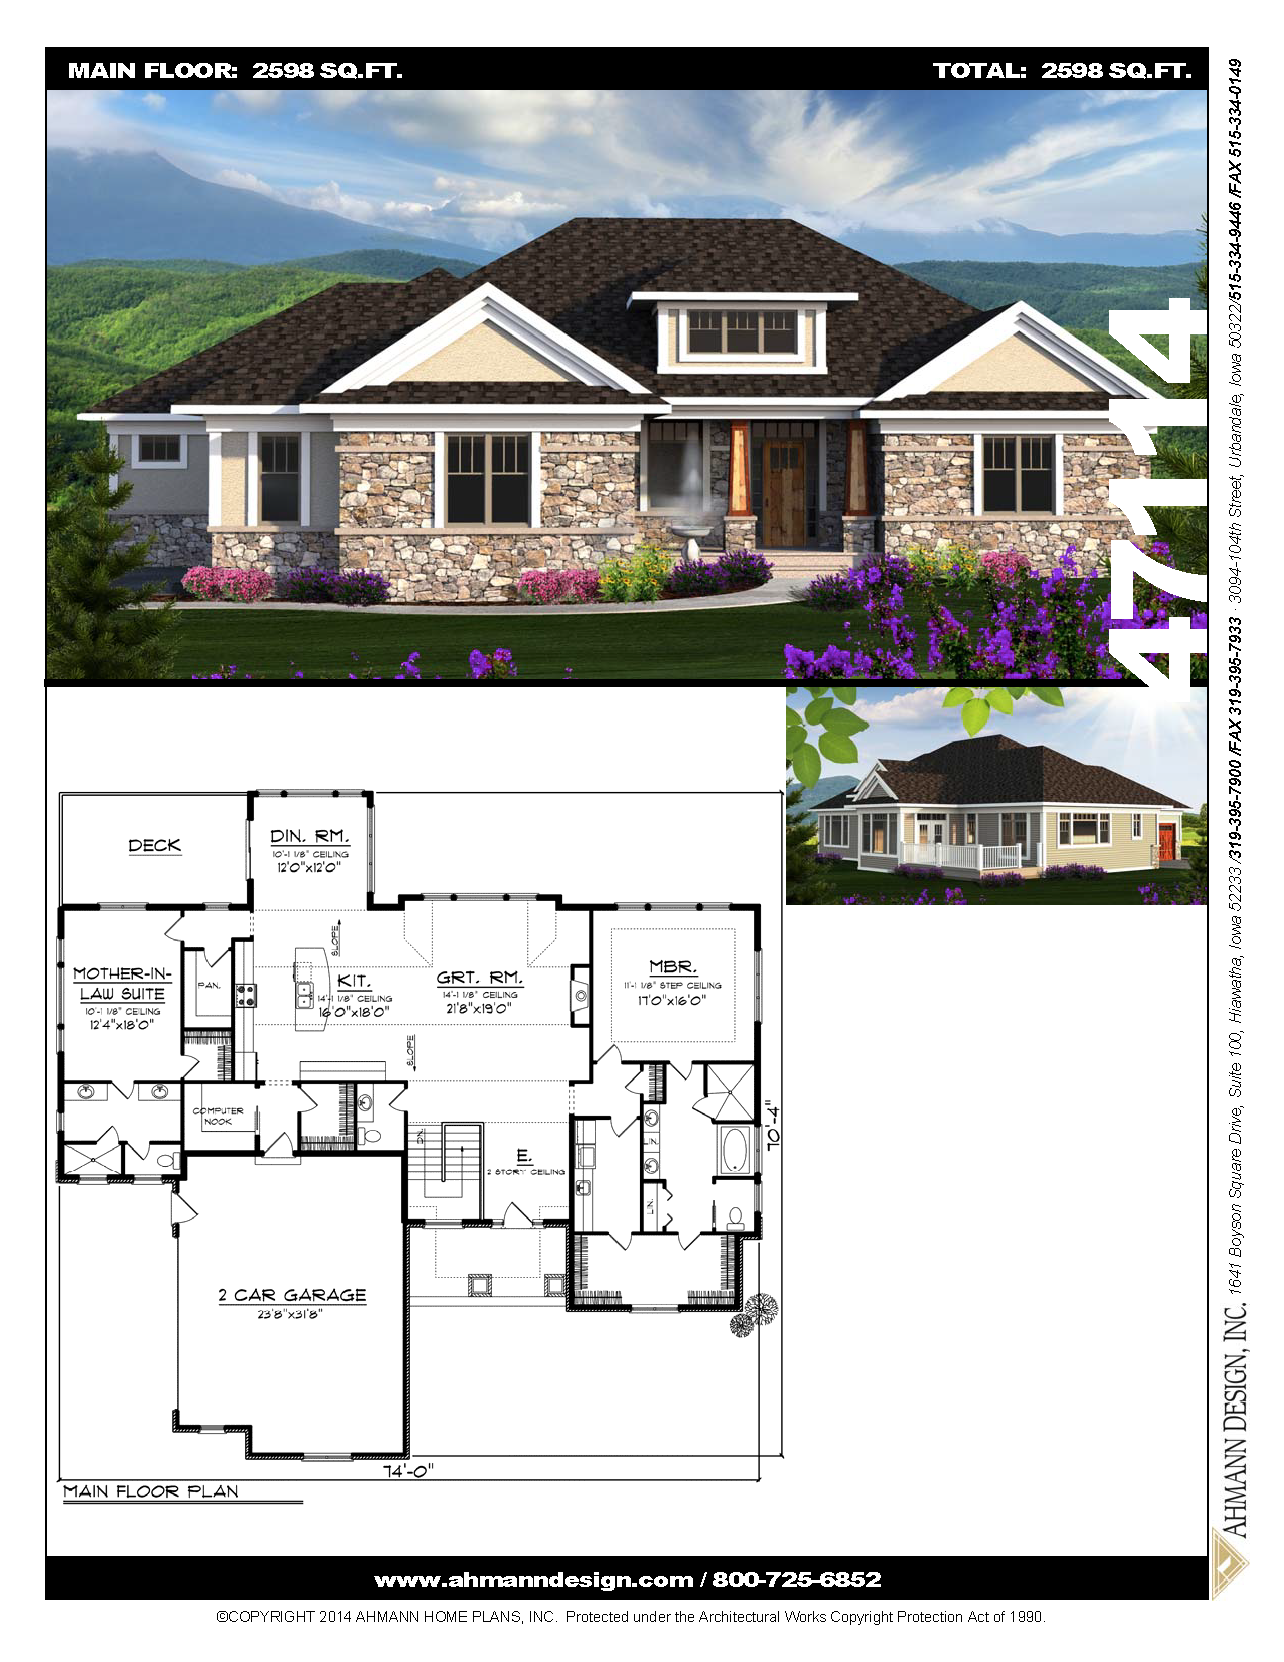 47114 House Plans House Layout Plans 2 Bedroom House Plans